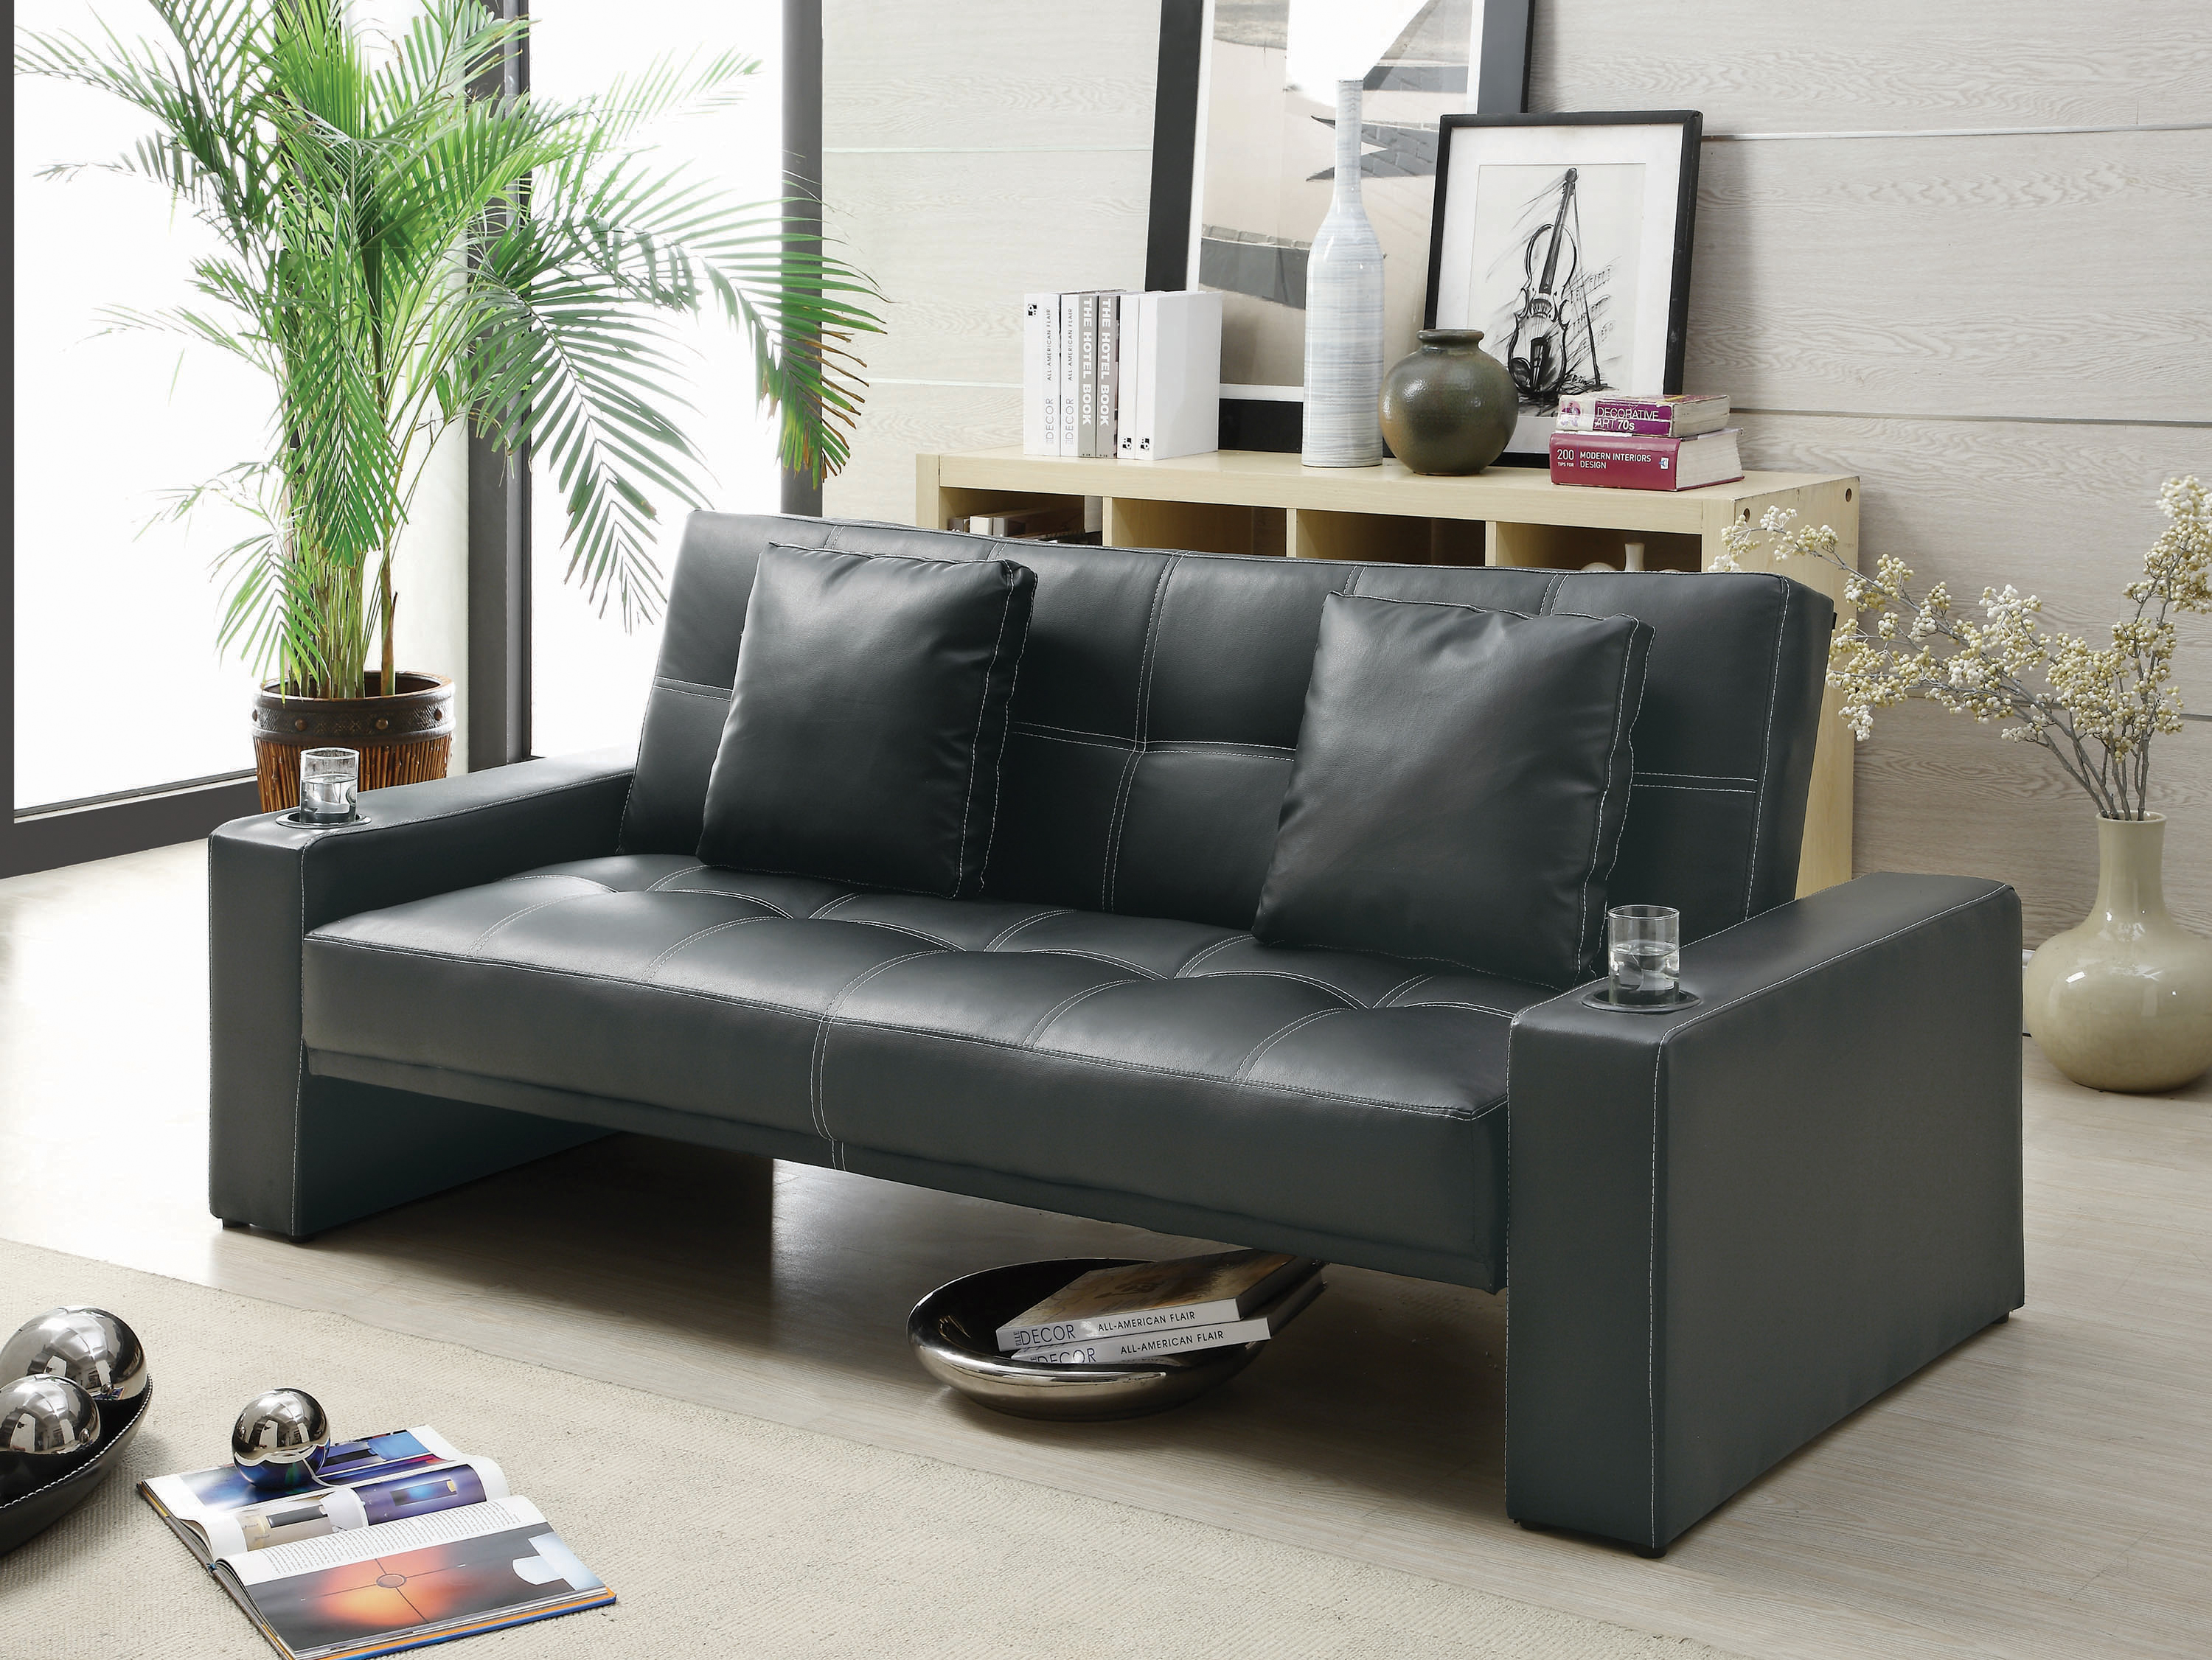 Modern PU Leather Sofa Bed Futon Durable With Cup Holders And Pillows Black